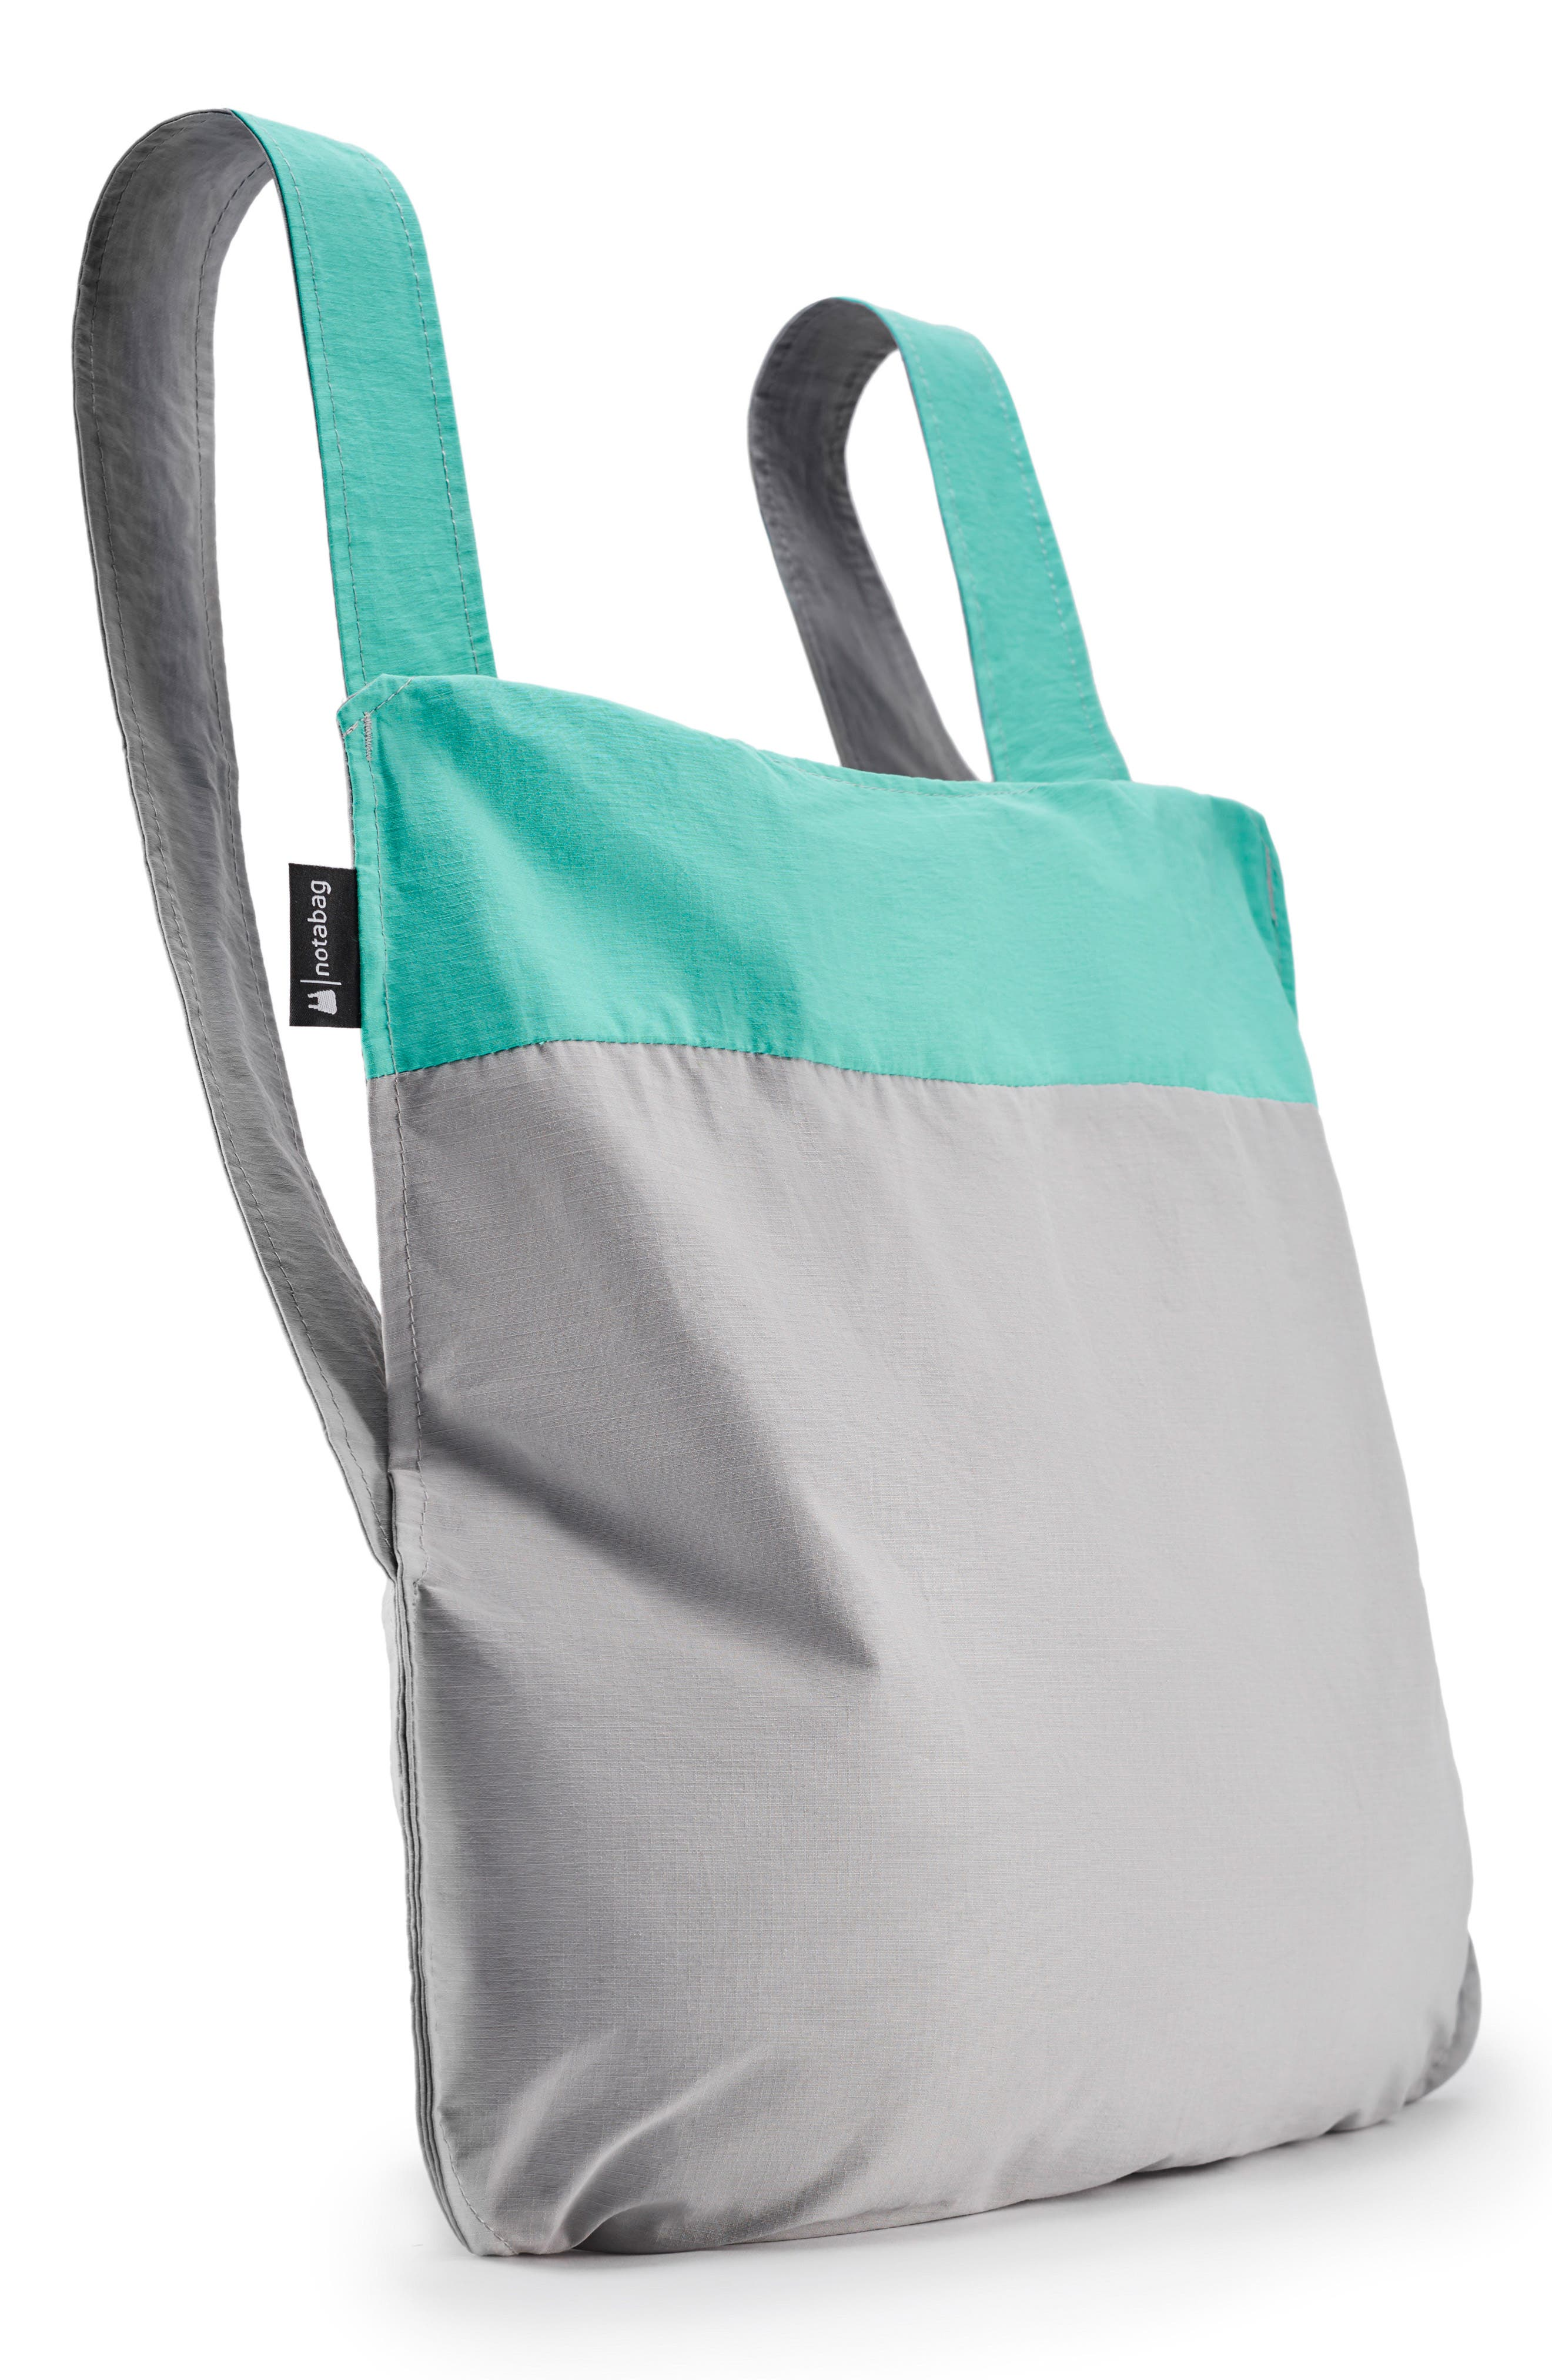 NOTABAG Convertible Tote Backpack, Main, color, MINT/ GREY